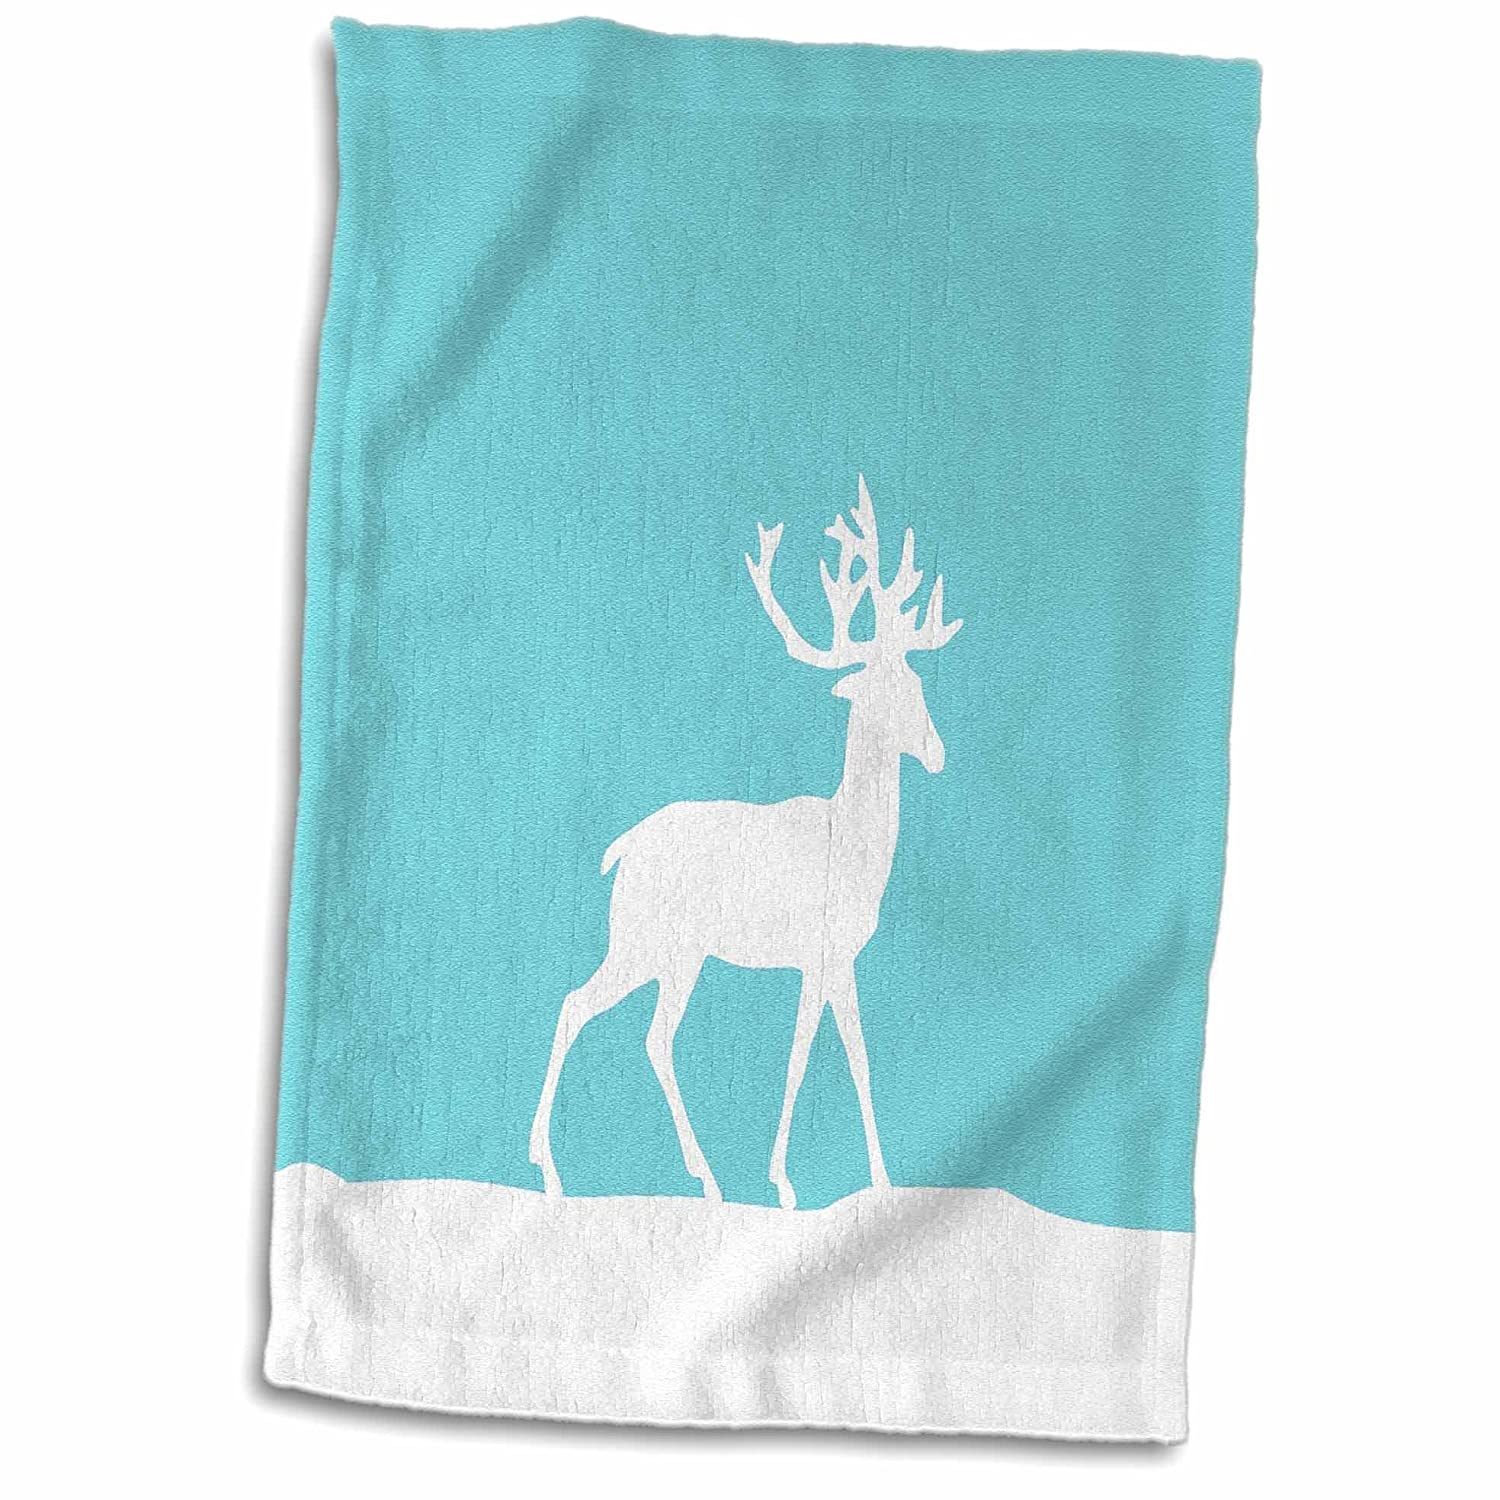 3D Rose Ice Blue Reindeer in The Snow - White Deer Silhouette On Teal Turquoise Aqua - for Christmas Xmas Hand/Sports Towel 15 x 22